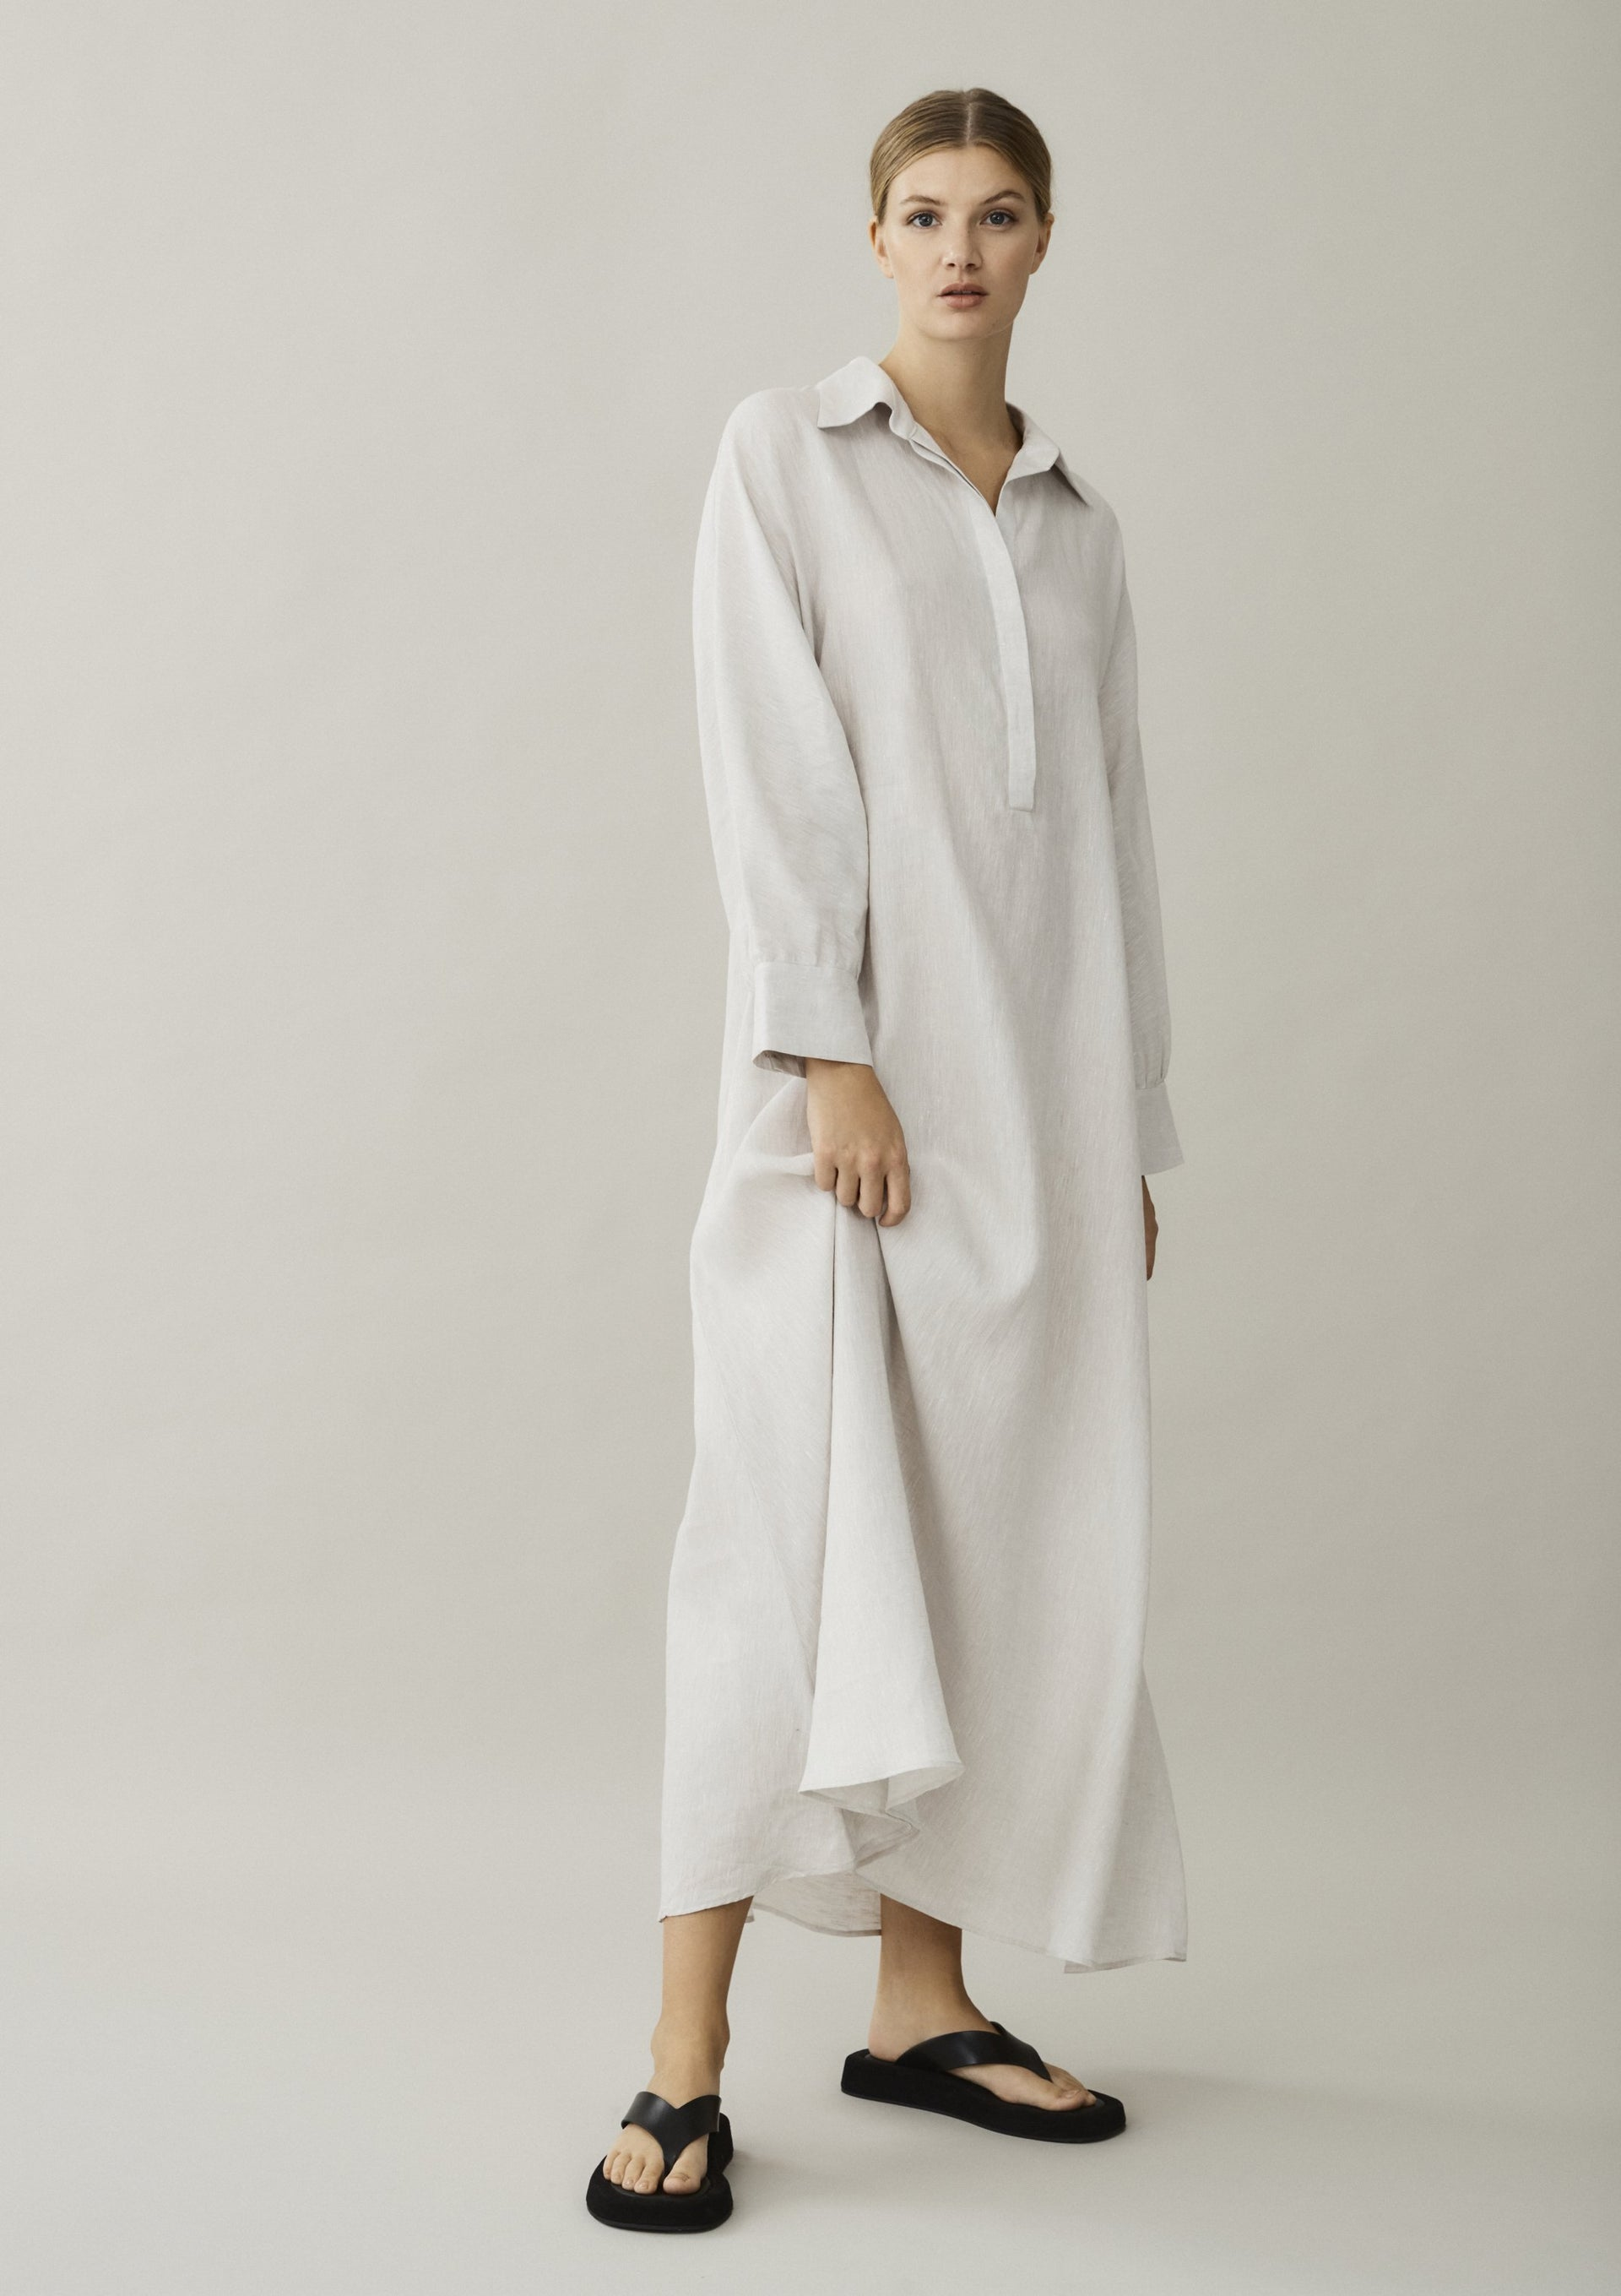 off white linen shirt dress maxi length